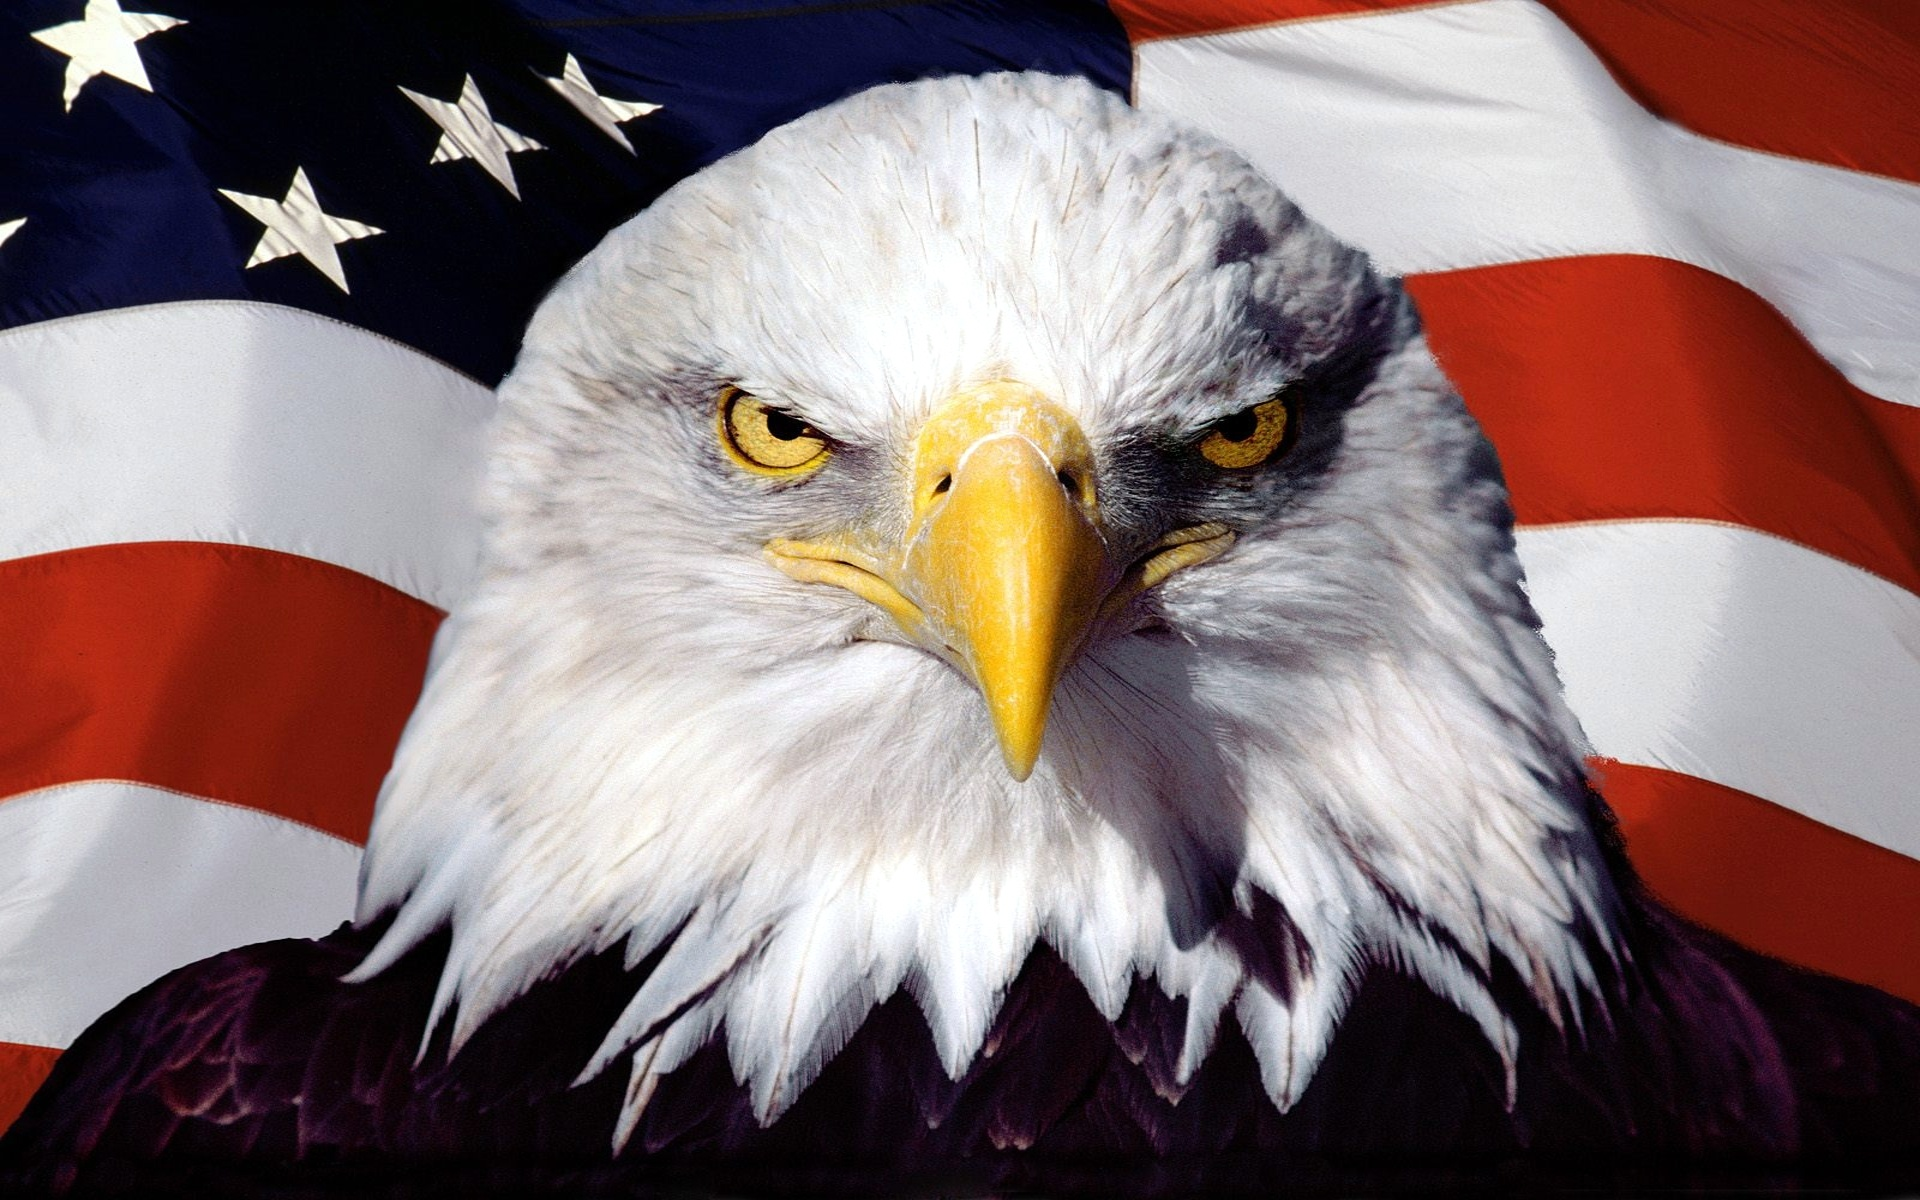 American-Flag-Eagle-Pictures-Images-Phot